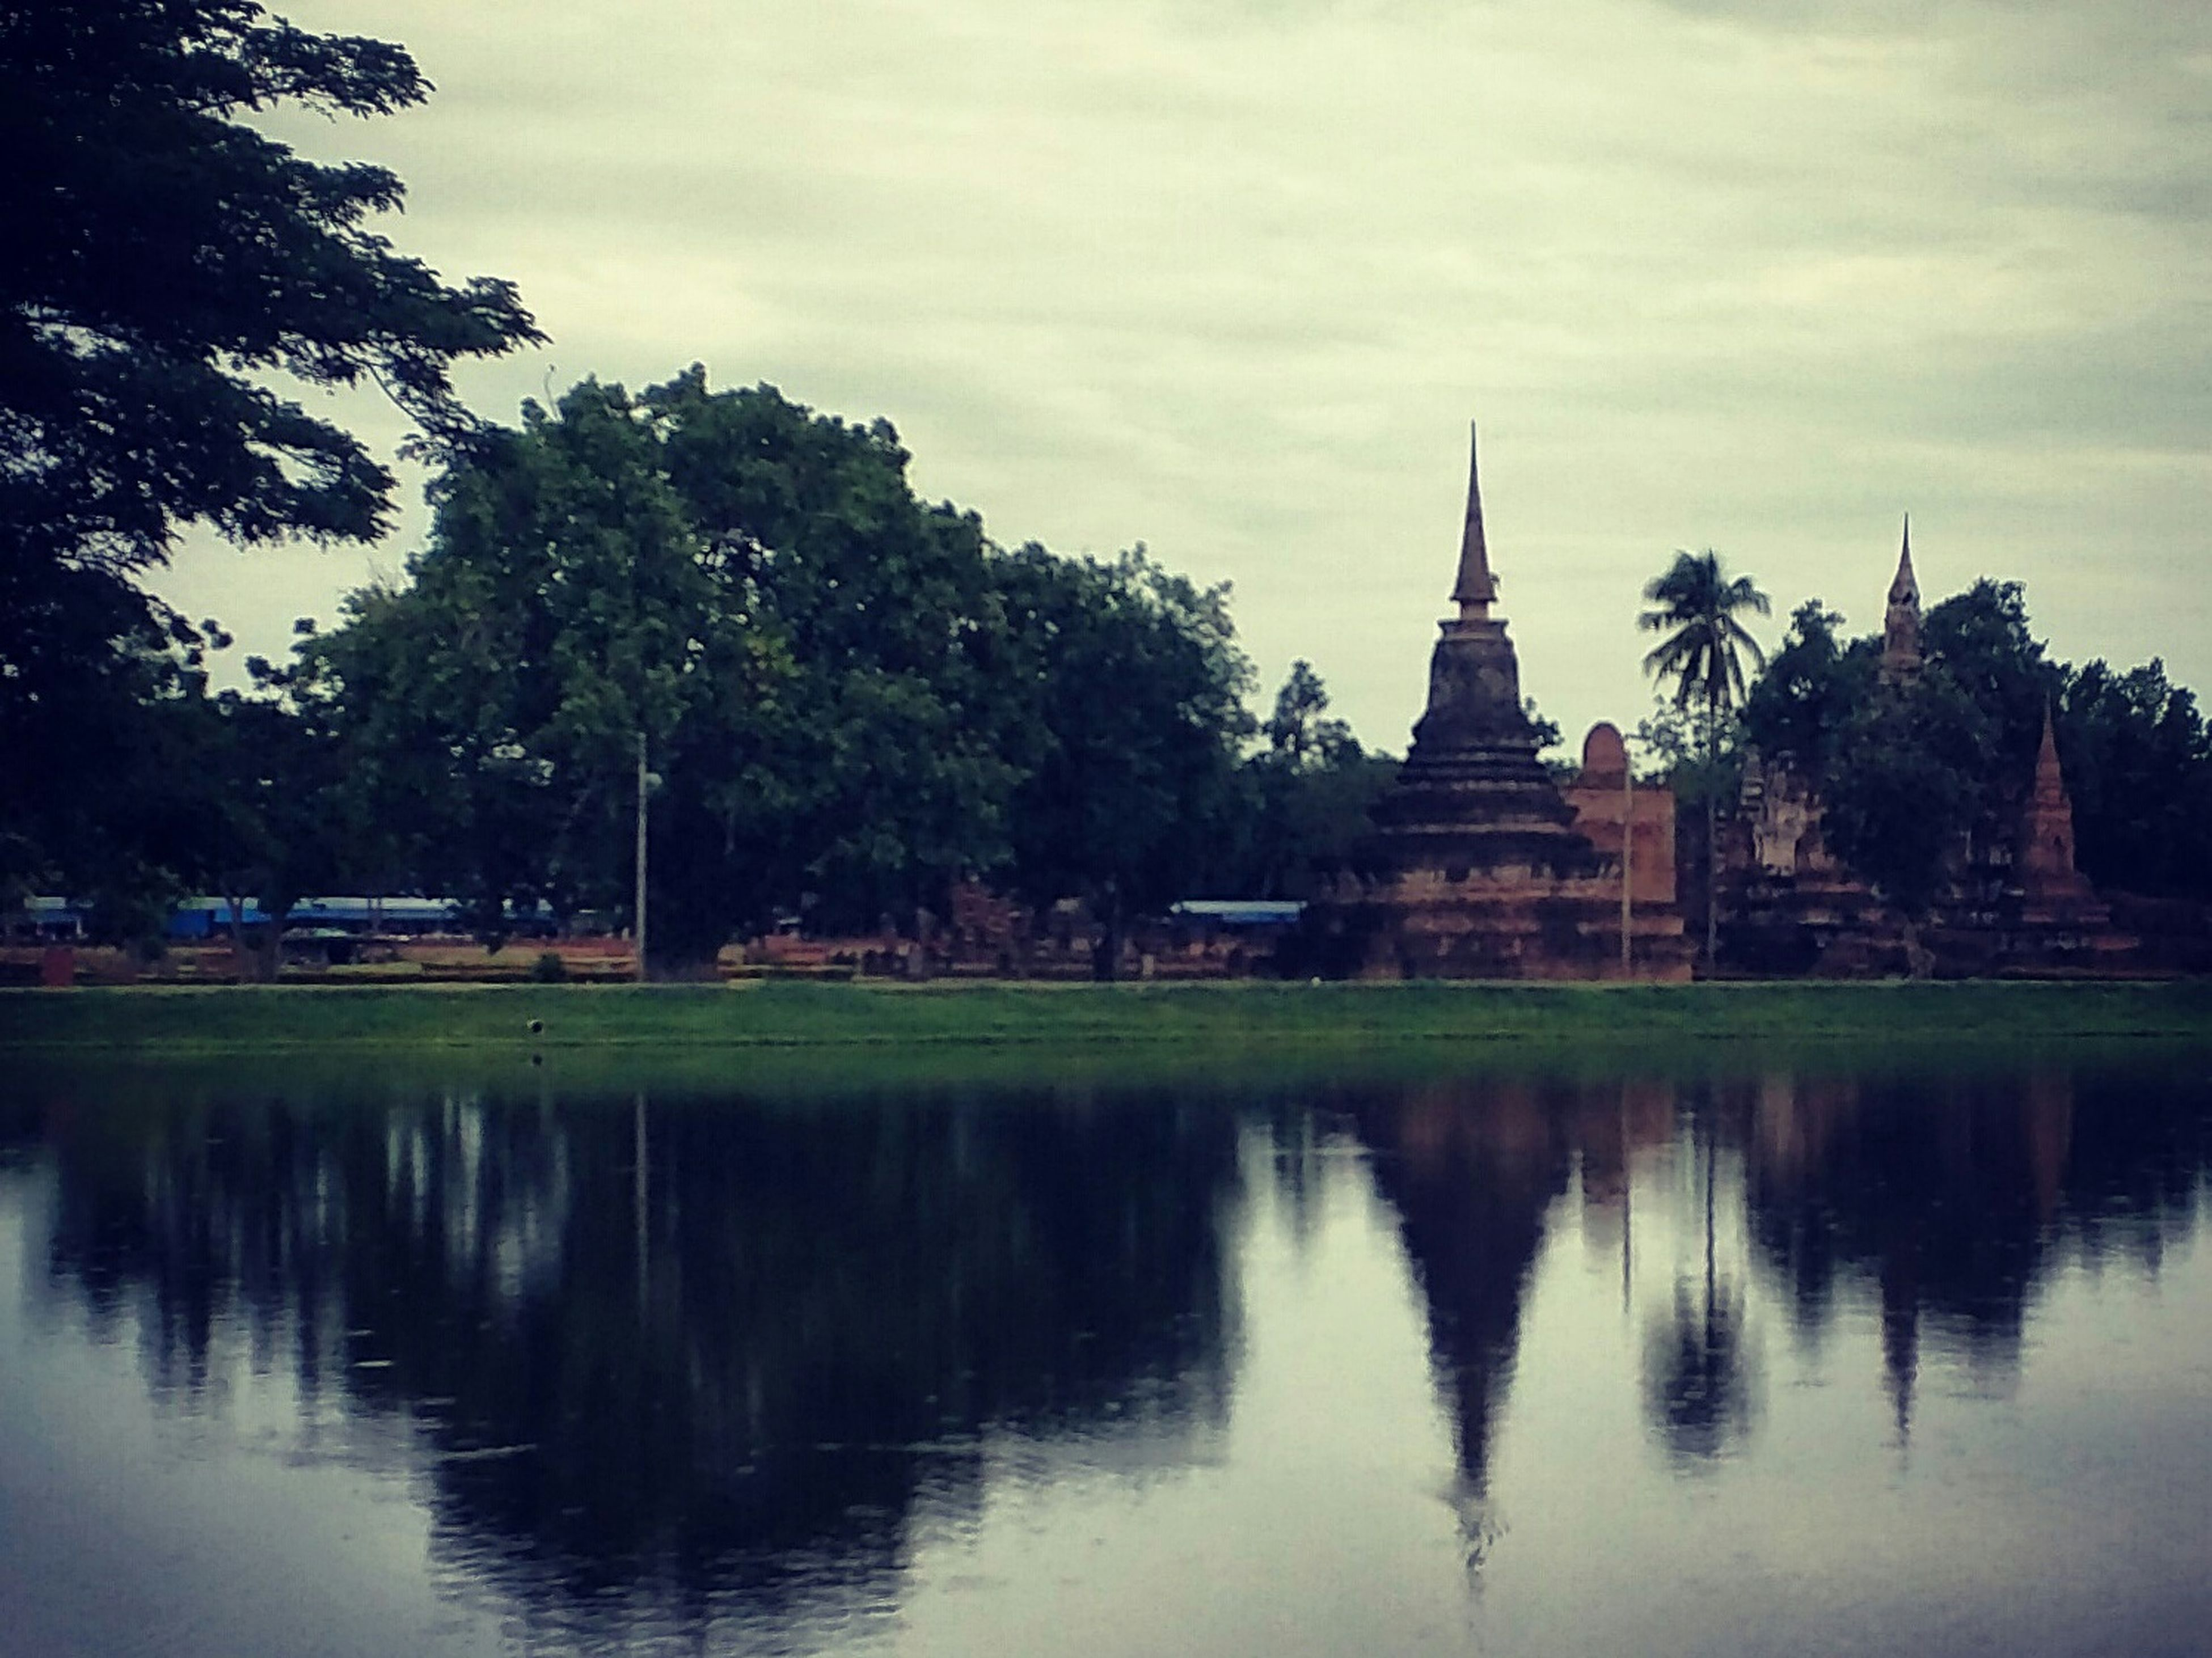 architecture, built structure, building exterior, tree, reflection, water, waterfront, sky, lake, religion, place of worship, spirituality, cloud - sky, river, travel destinations, famous place, cloud, church, pond